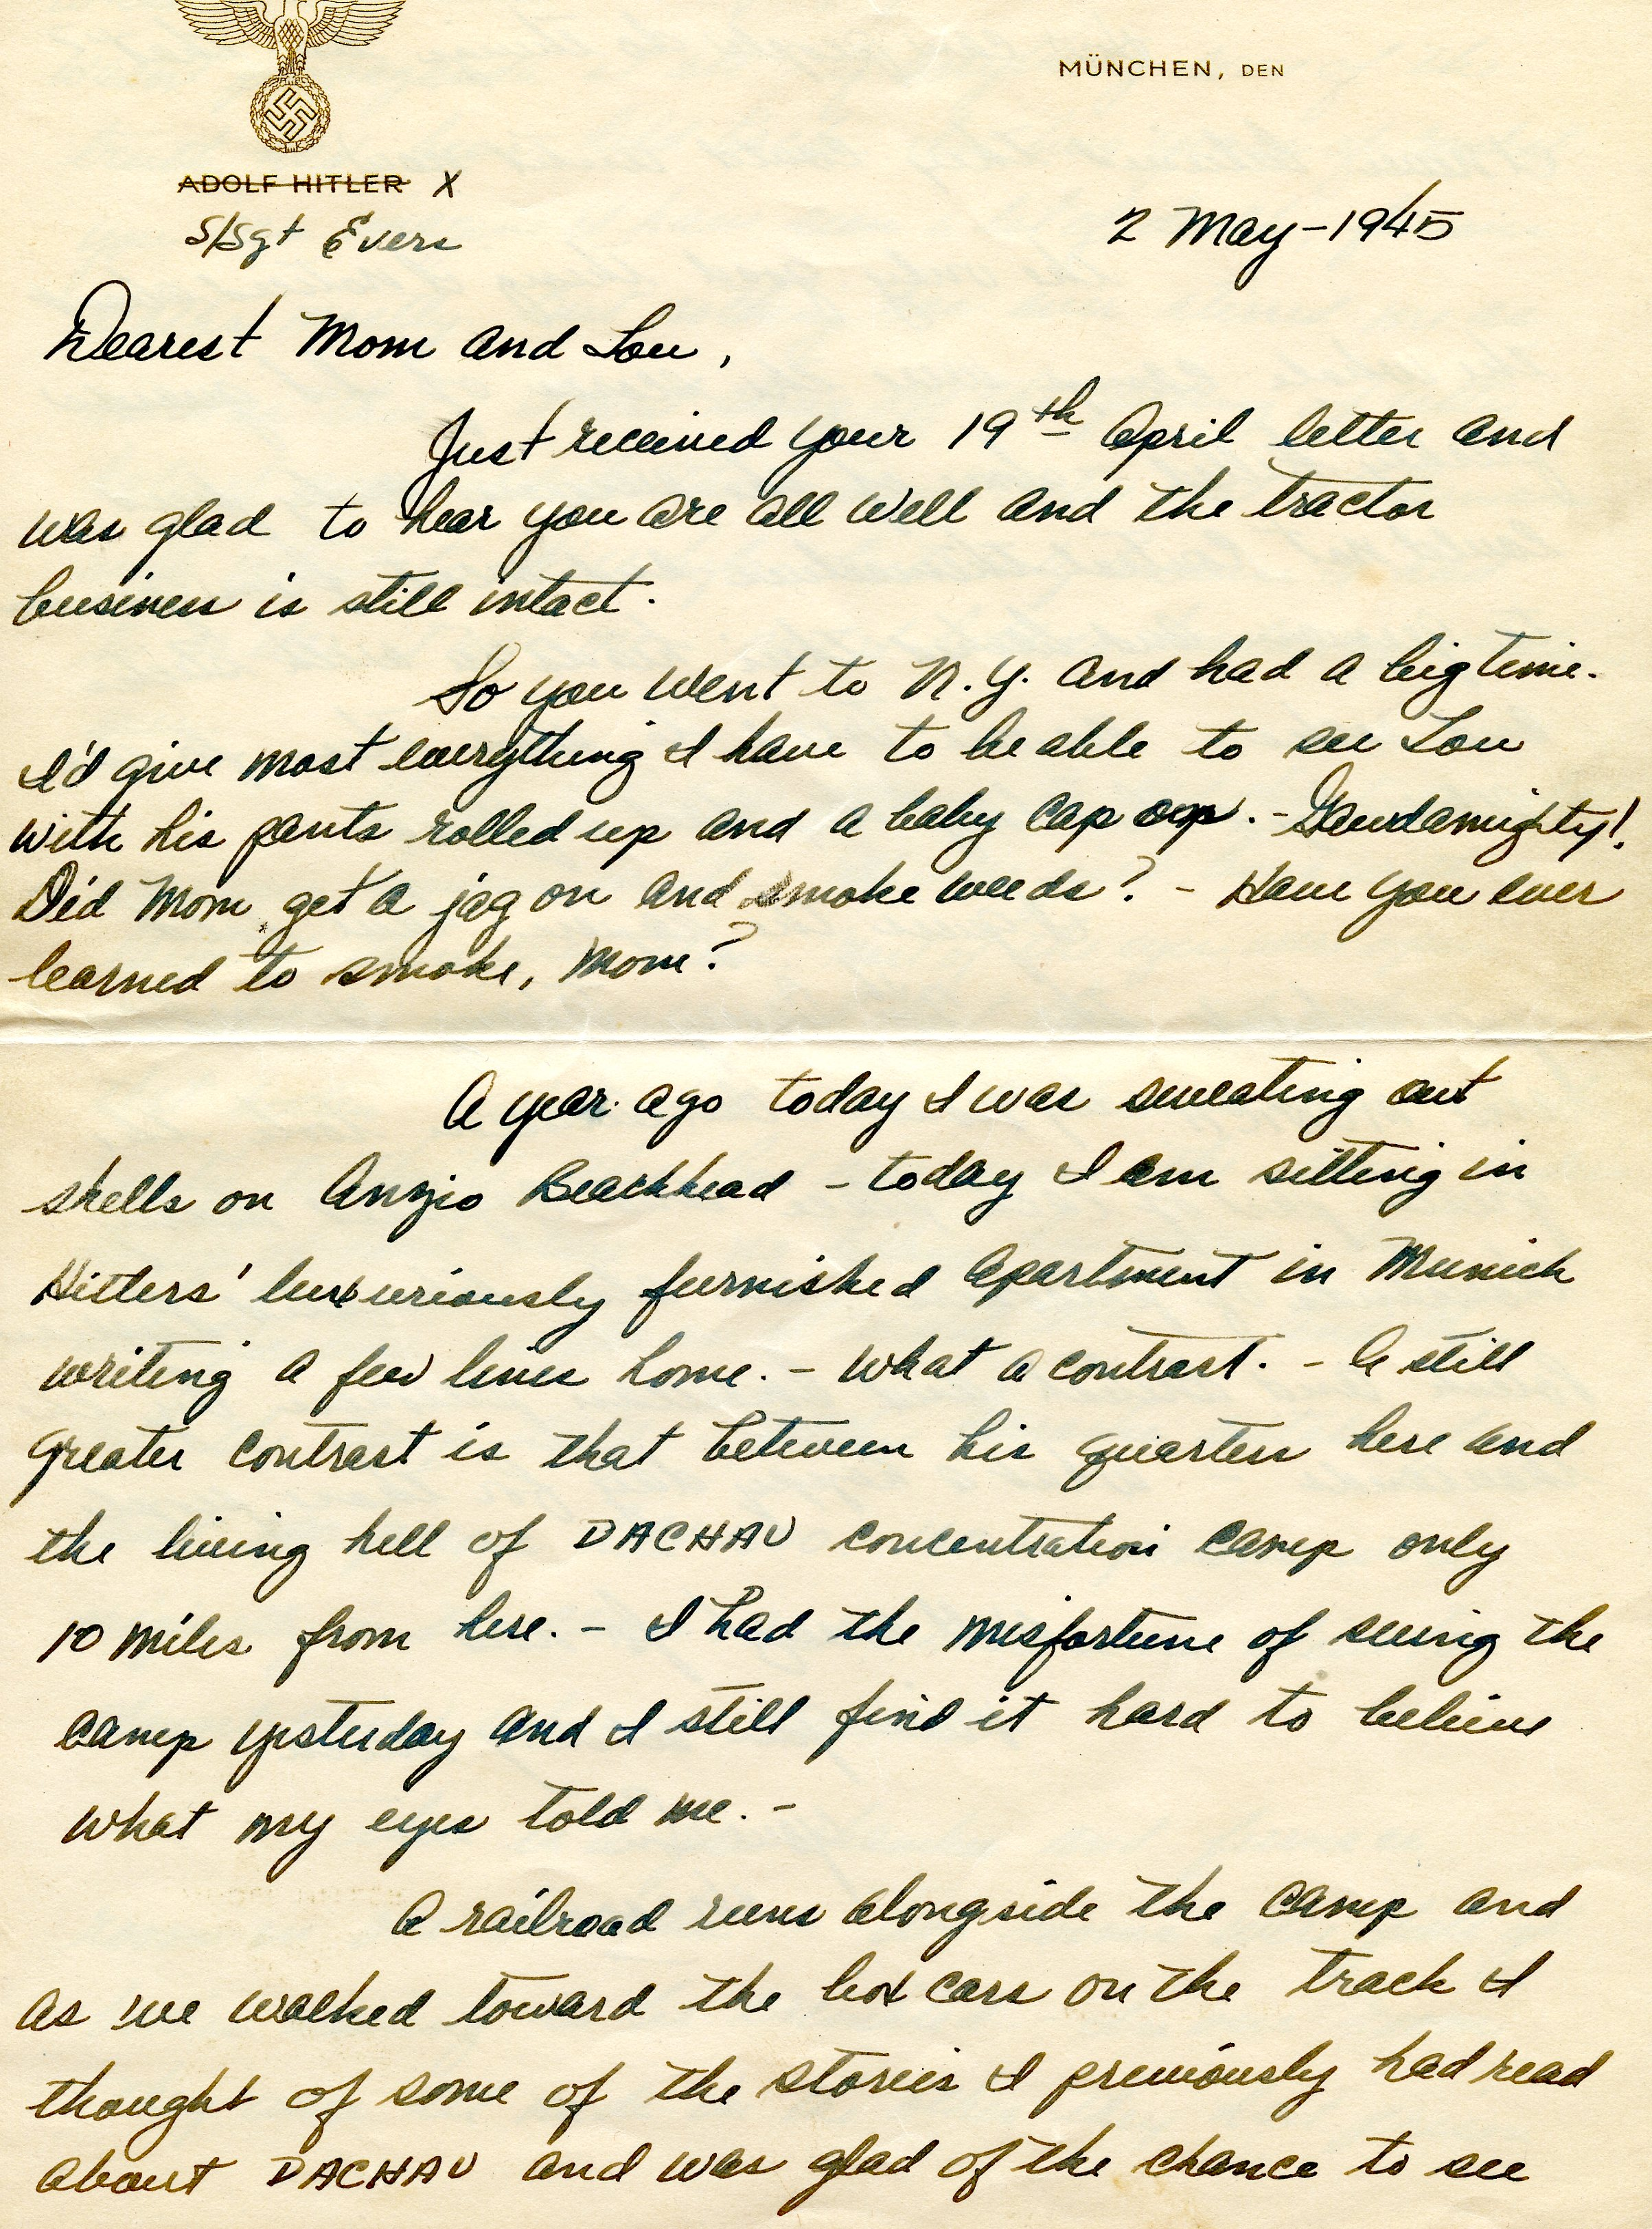 Letter from a U.S. soldier on Hitler's stationary